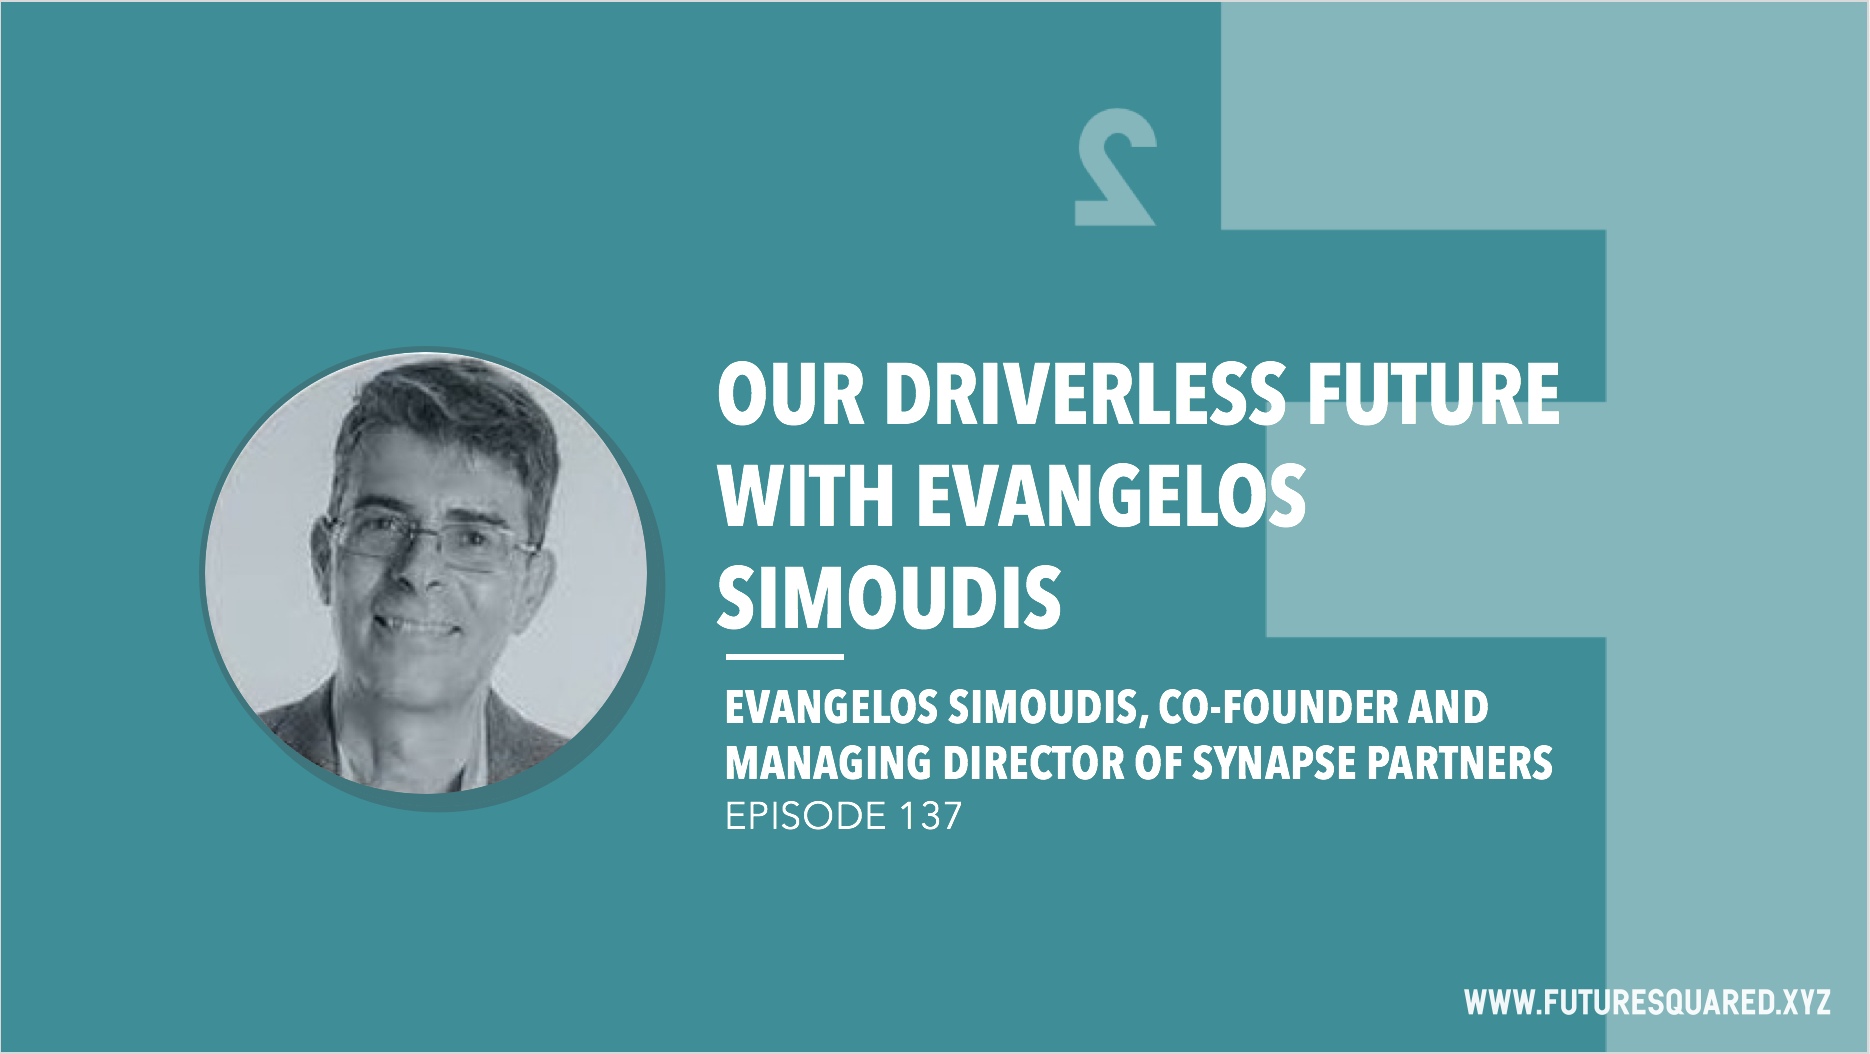 Future Squared Episode #137: Our Driverless Future with Evangelos Simoudis